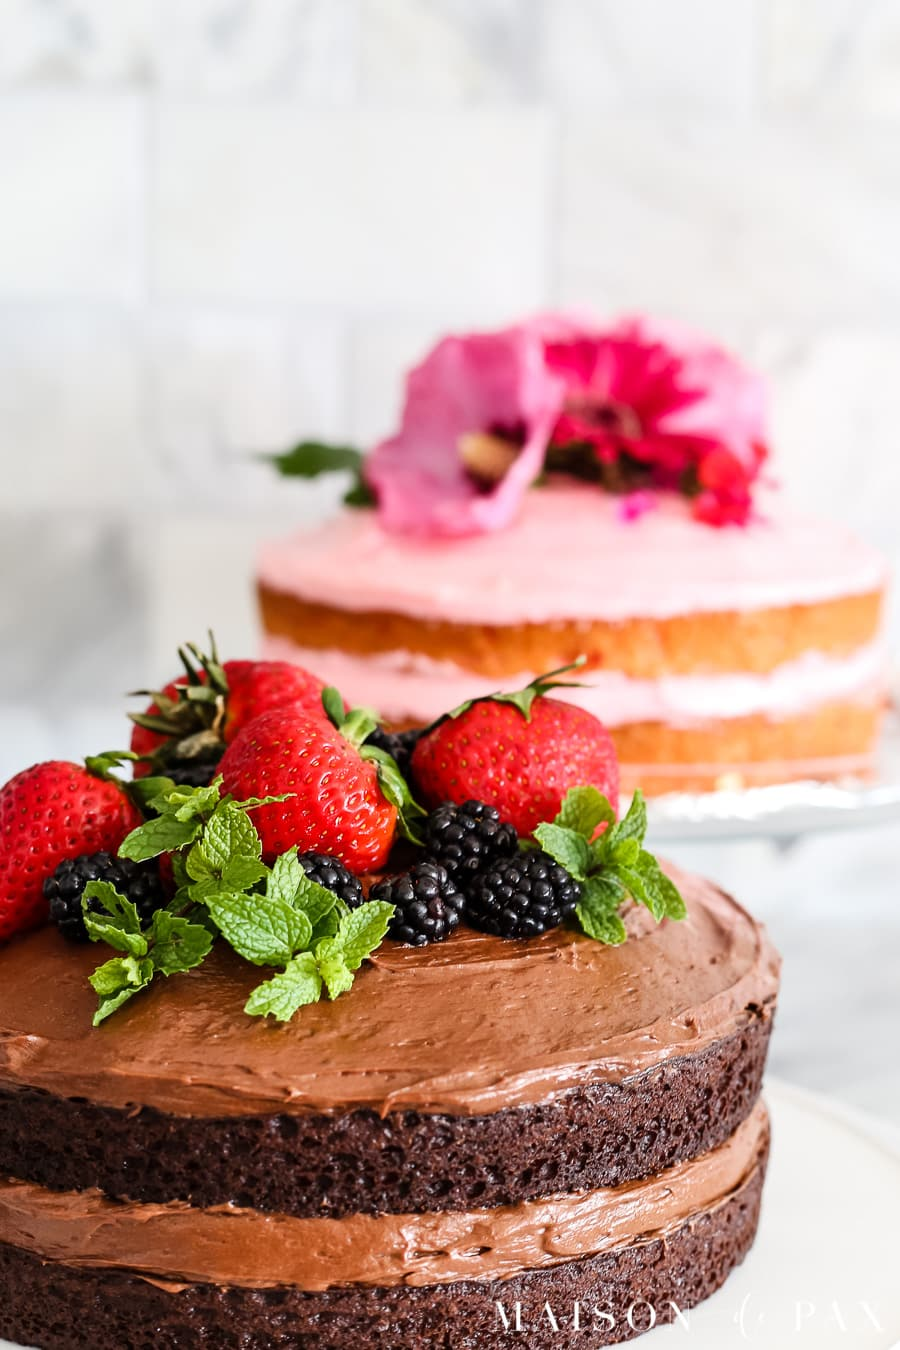 Learn how to make a naked cake! tips and ideas for making and decorating naked cakes. #nakedcake #nakedcakerecipe #cakefrosting #howtofrost #cakerecipe #creamcheesefrosting #cakedecorating #whitecake